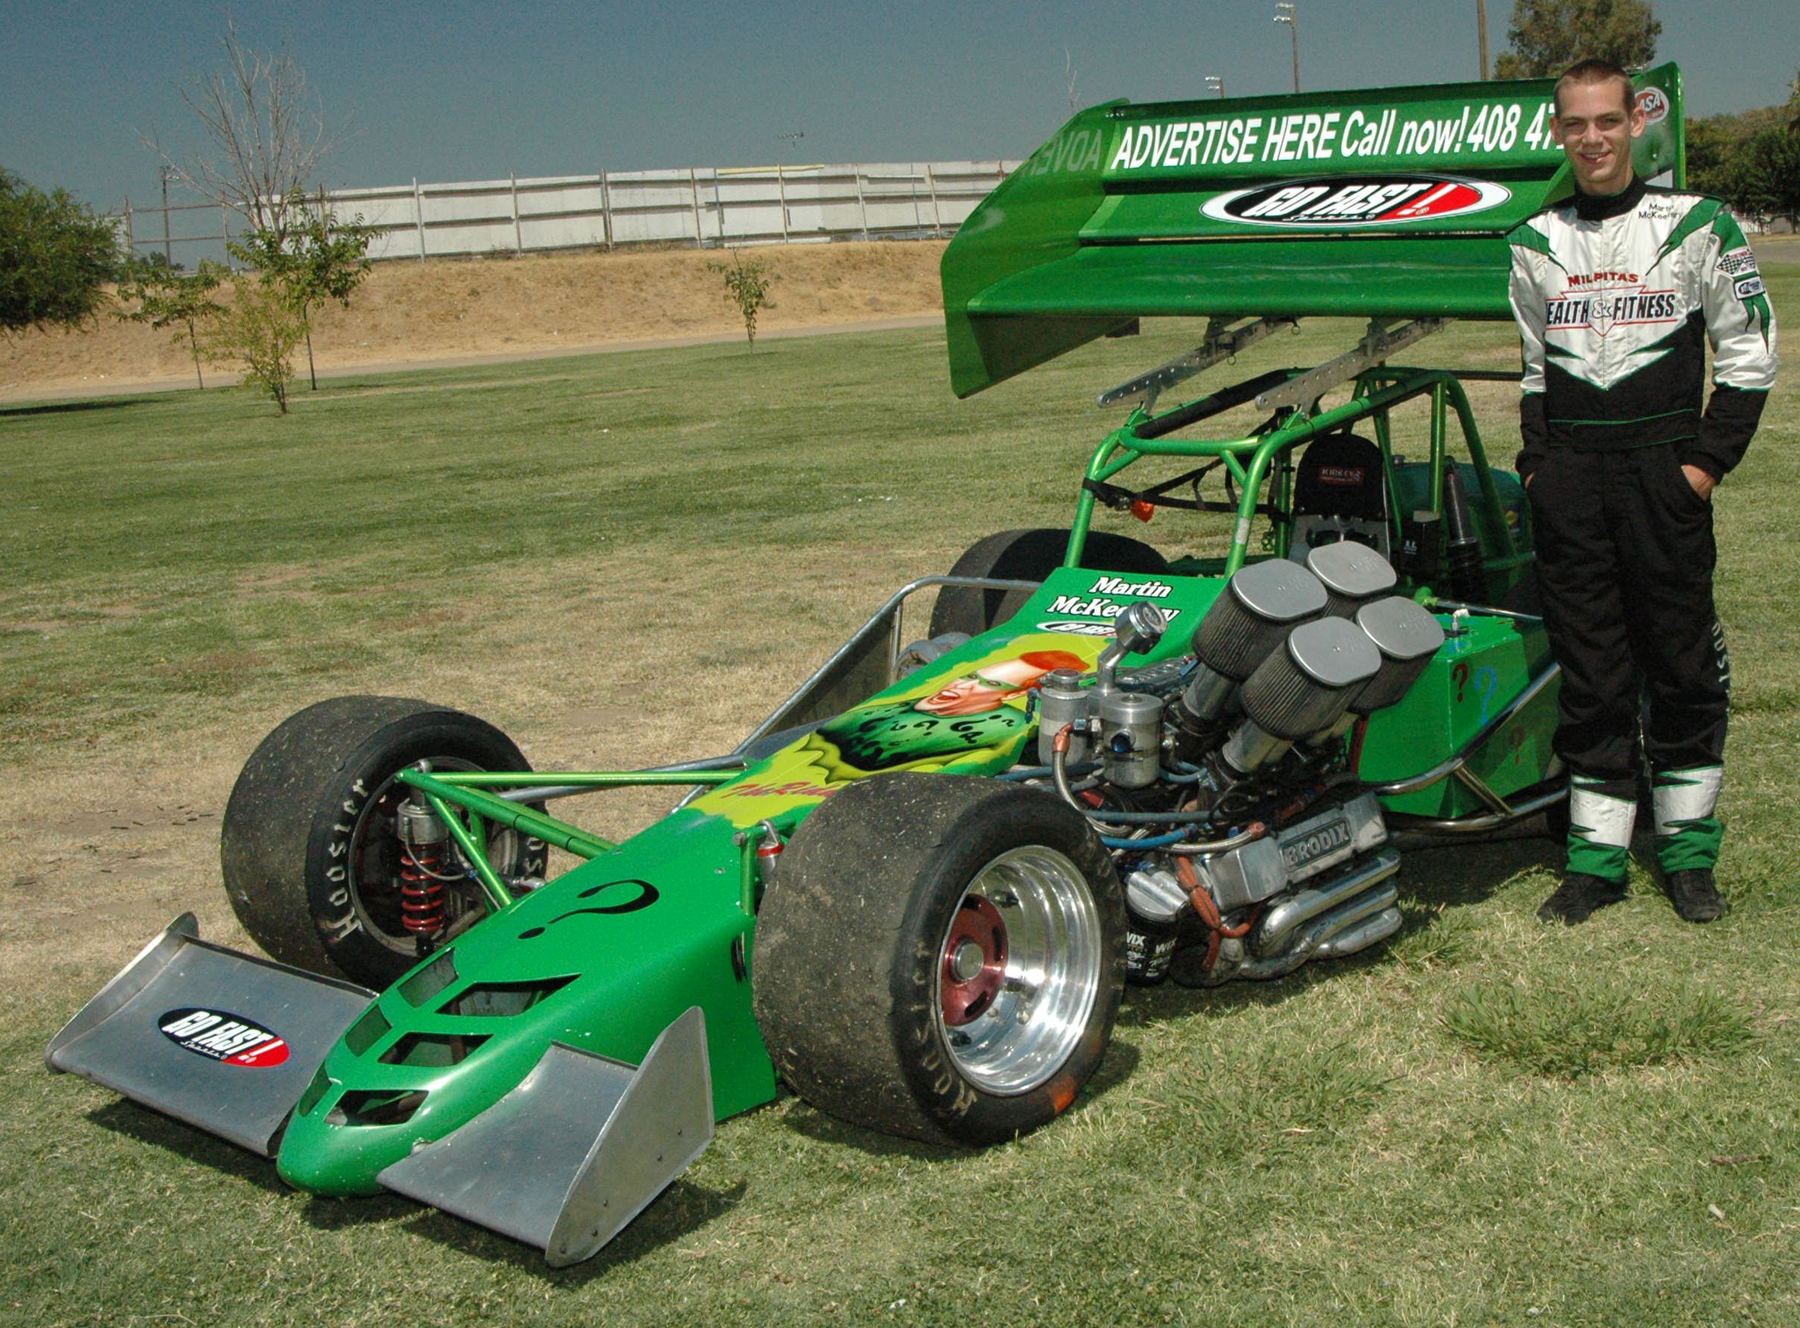 Supermodified Car For Sale In: Supermodified Race Car For Sale